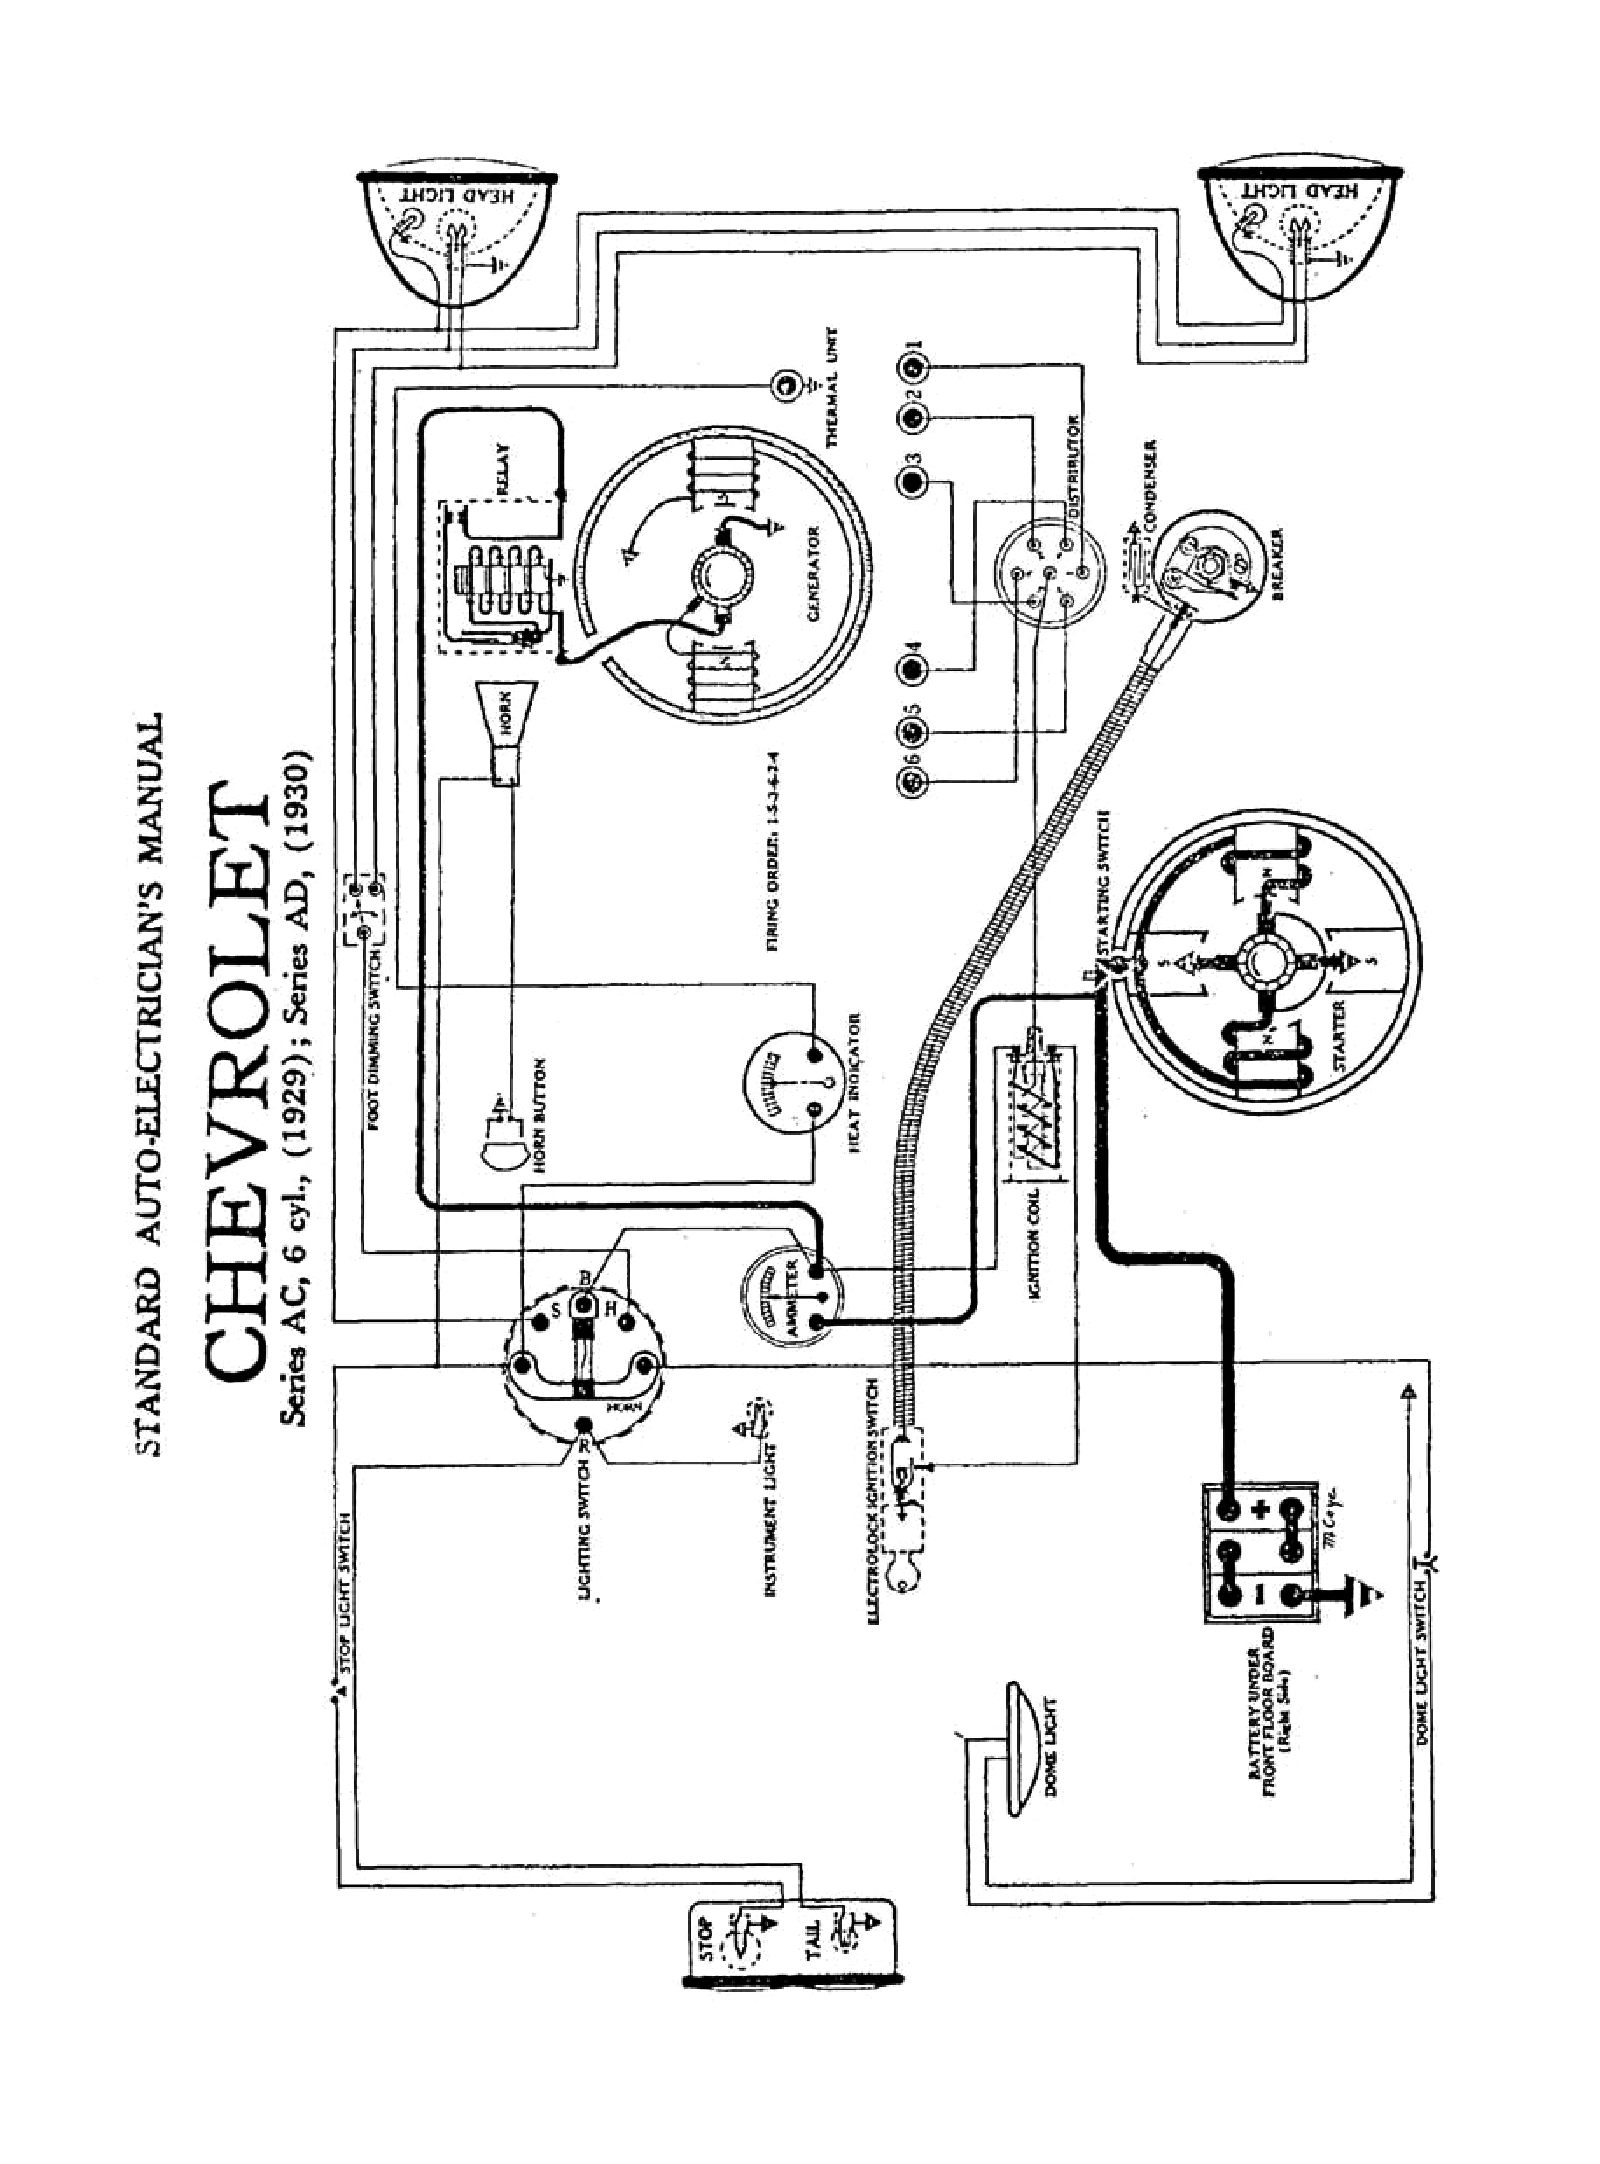 2930wiring chevy wiring diagrams 1928 model a ford wiring diagram at mr168.co